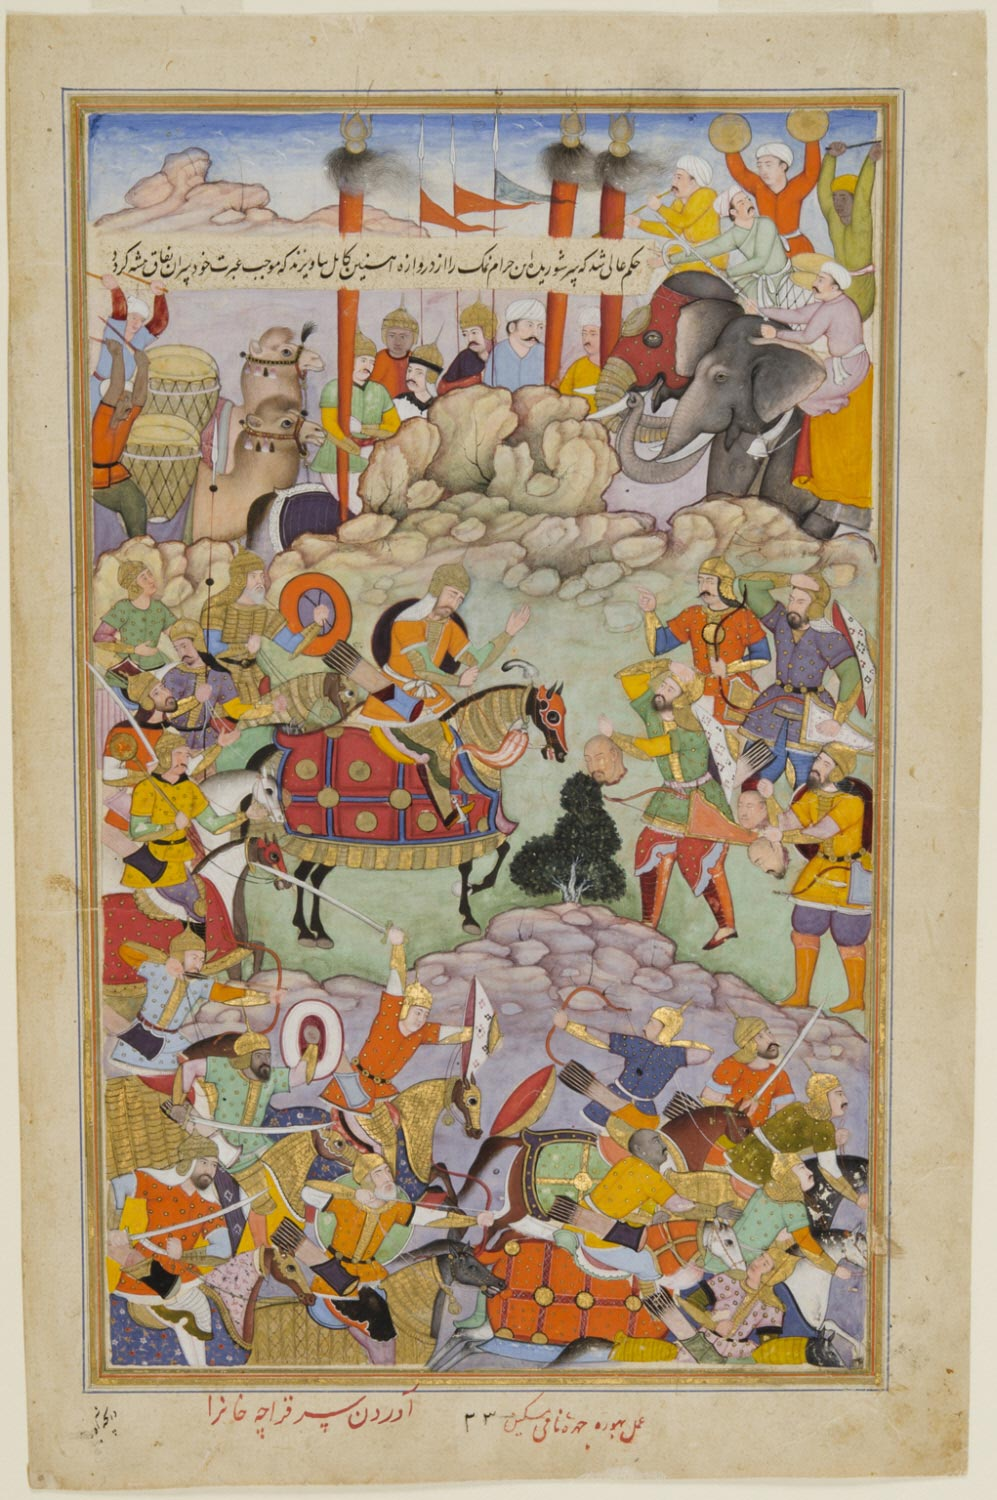 The Mughal Ruler Humayun Receives a Traitor's Head